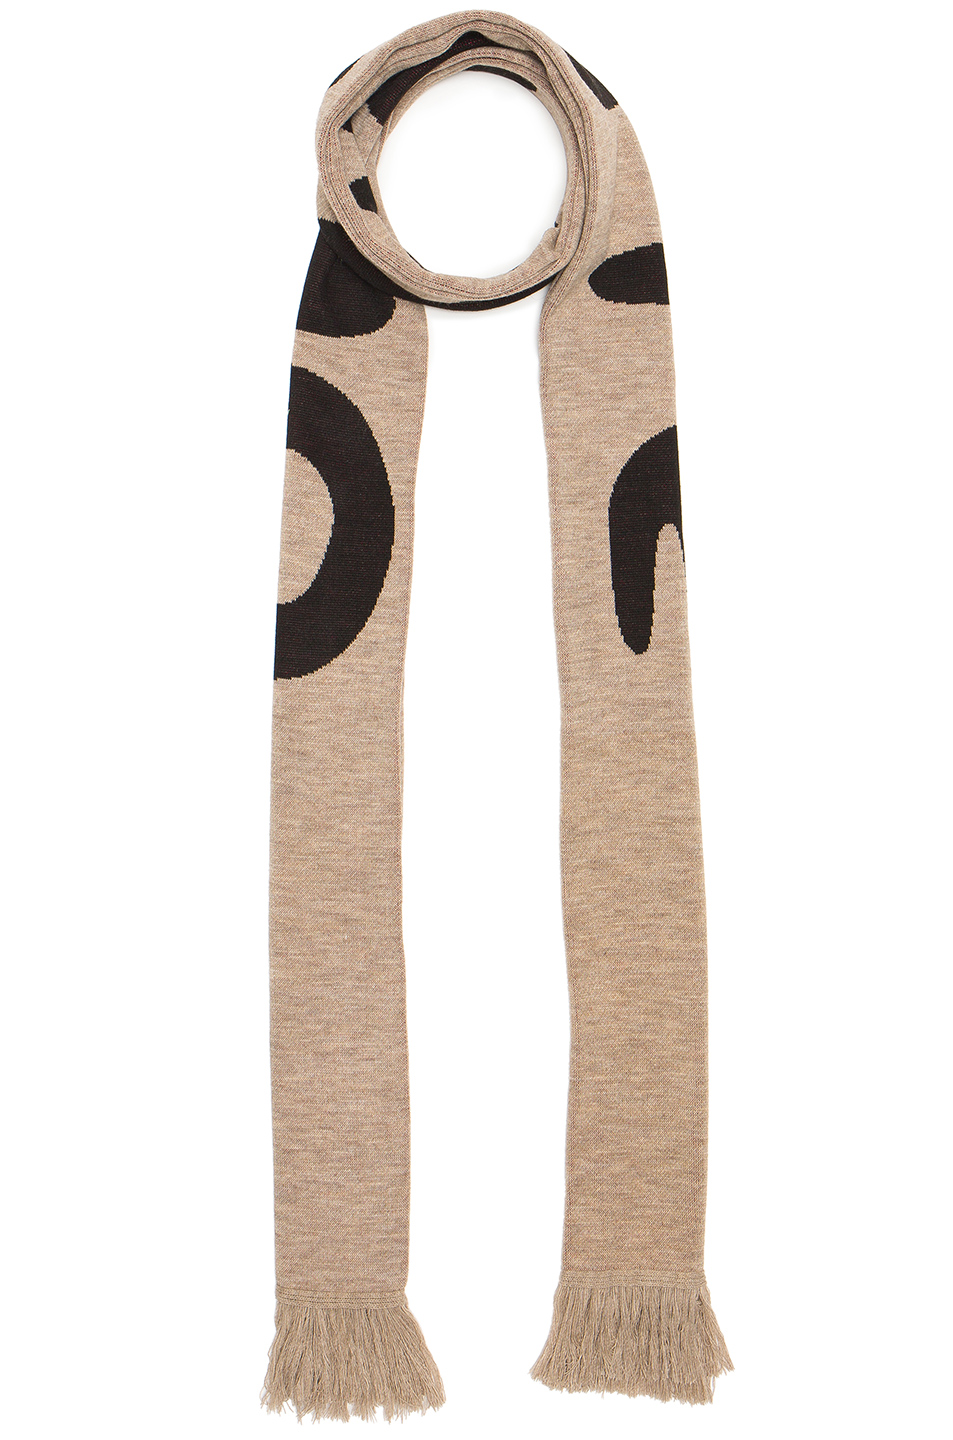 OFF-WHITE Mirror Mirror Big Scarf in Brown,Abstract